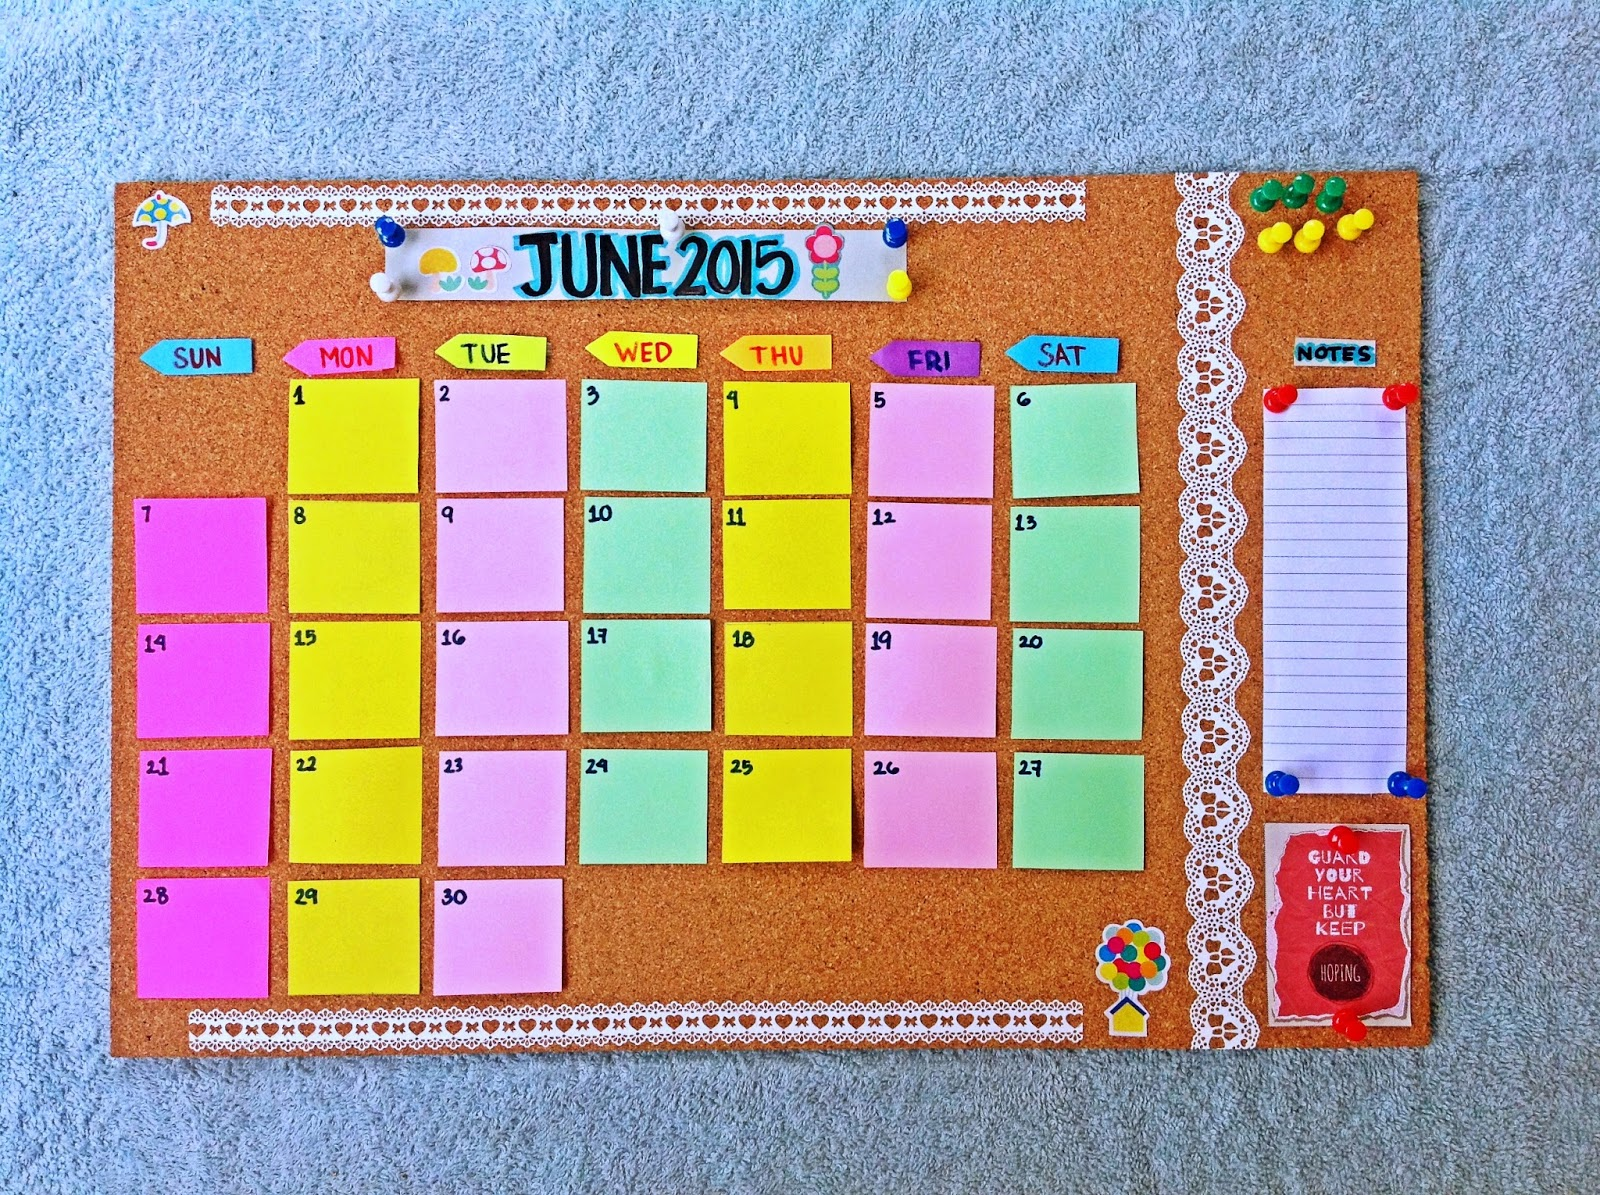 Diy Calendar For School : Paper invader diy cork board calendar